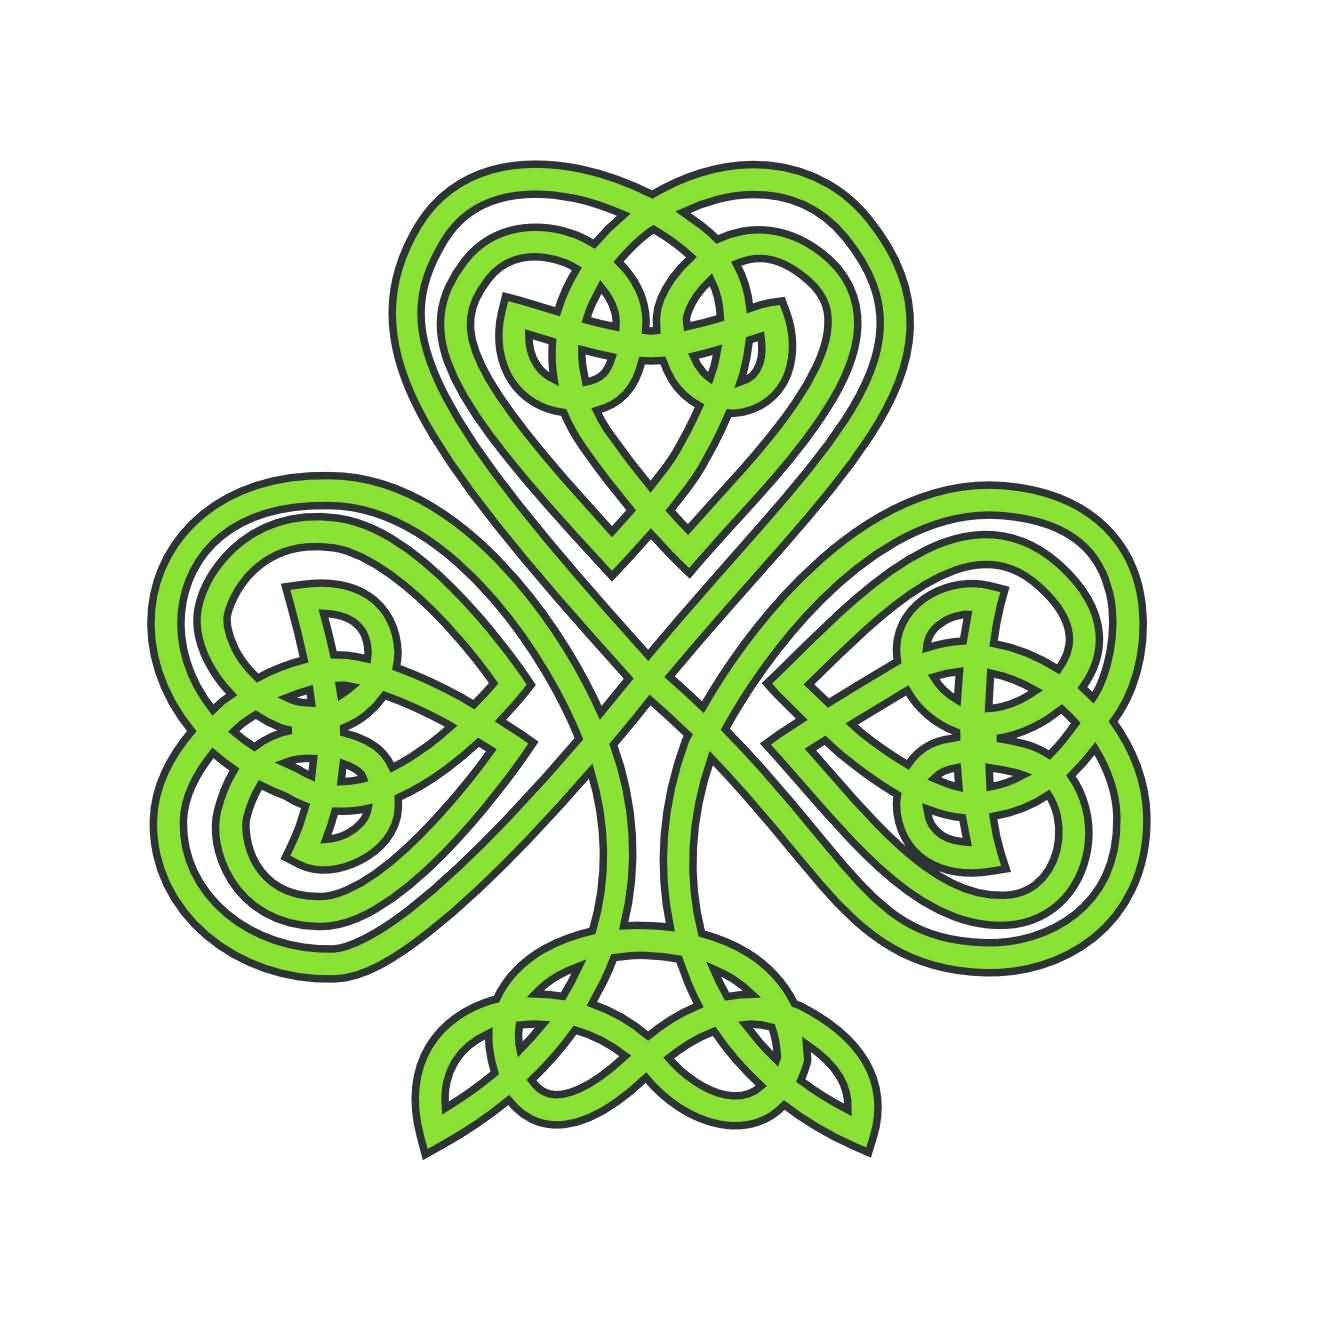 Celtic Knot Shamrock Tattoo Design Idea On Paper